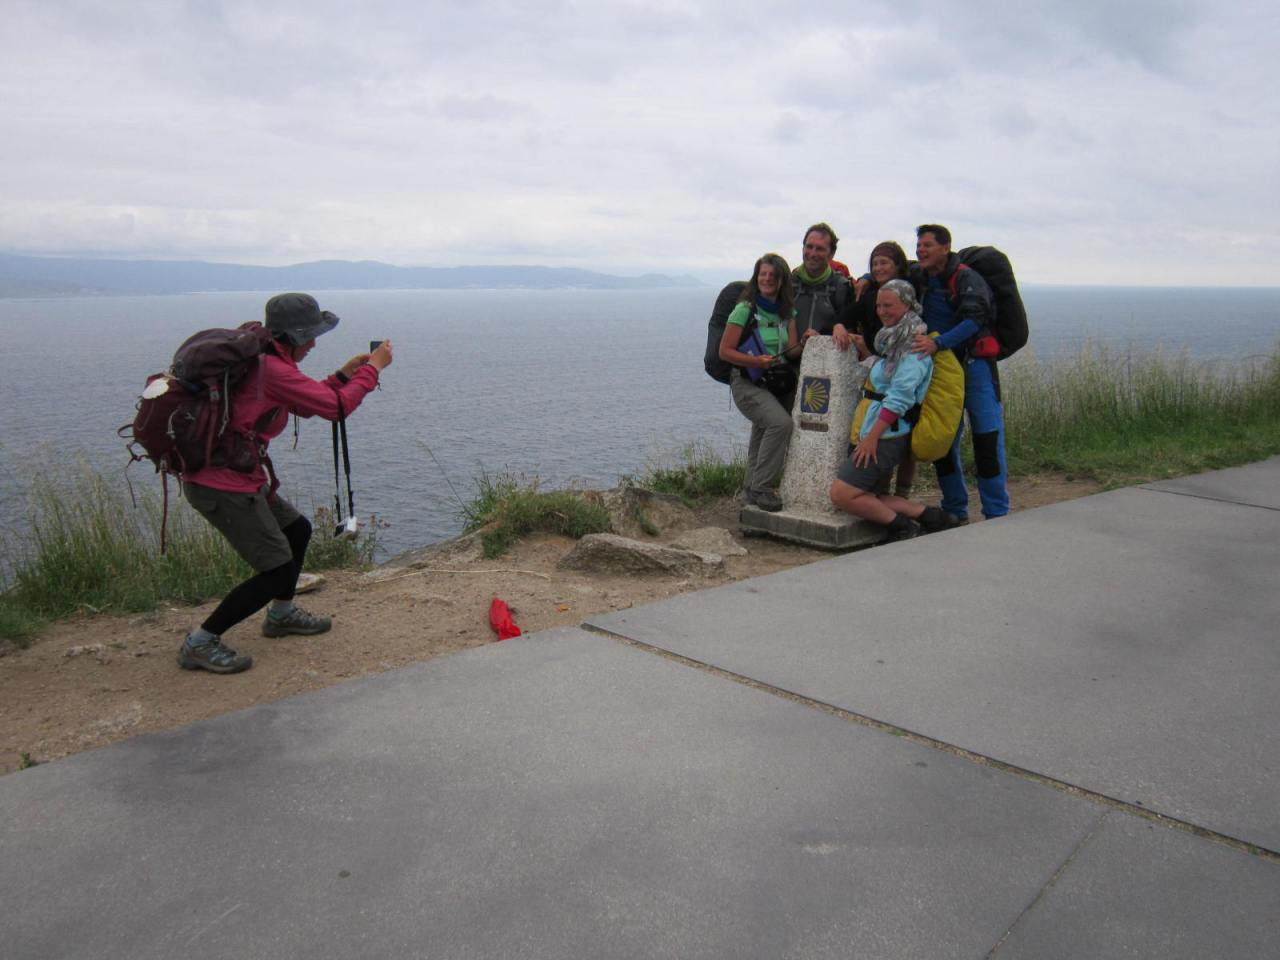 Pilgrims at point 0,00km (Cape Finisterre/Fisterra at the end of the world)